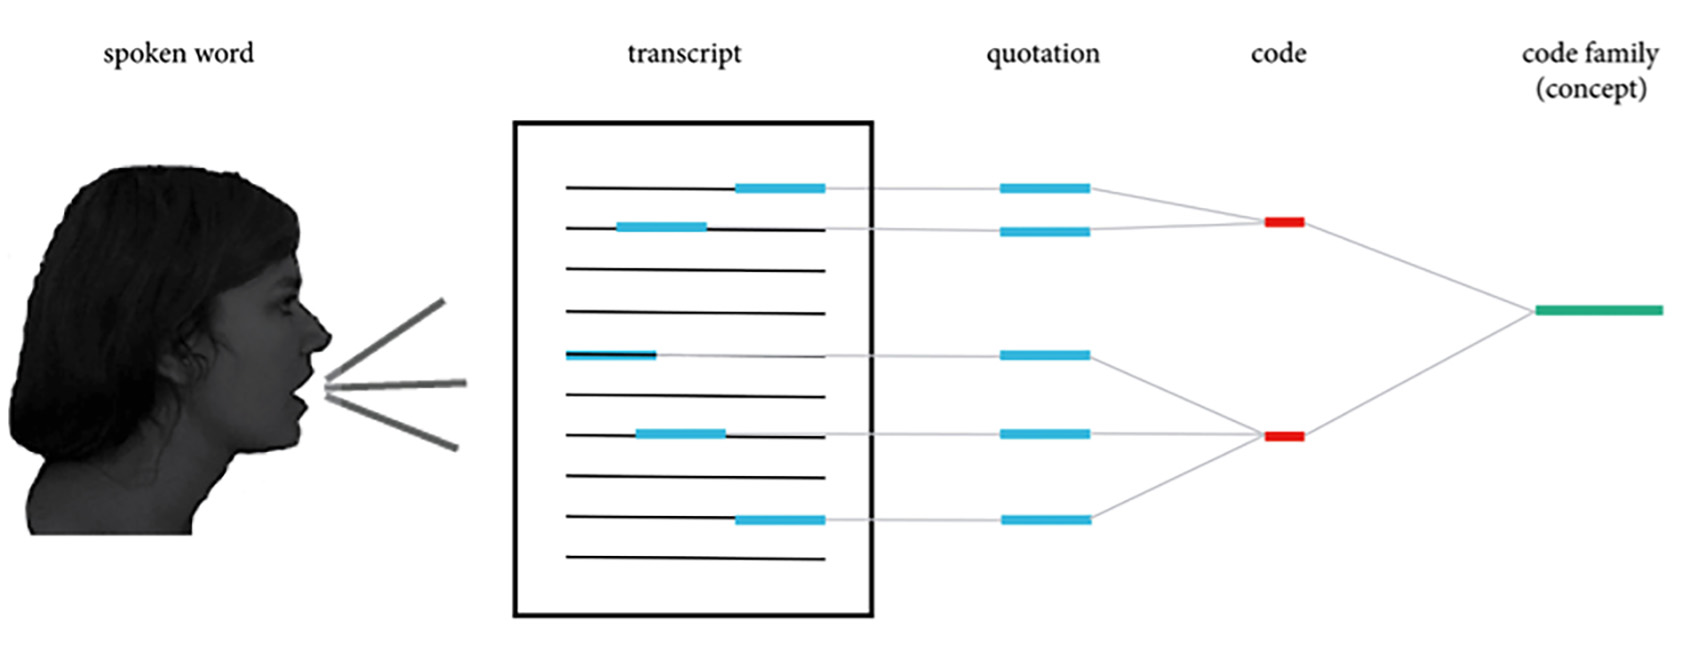 Node-Link relationship in textual form